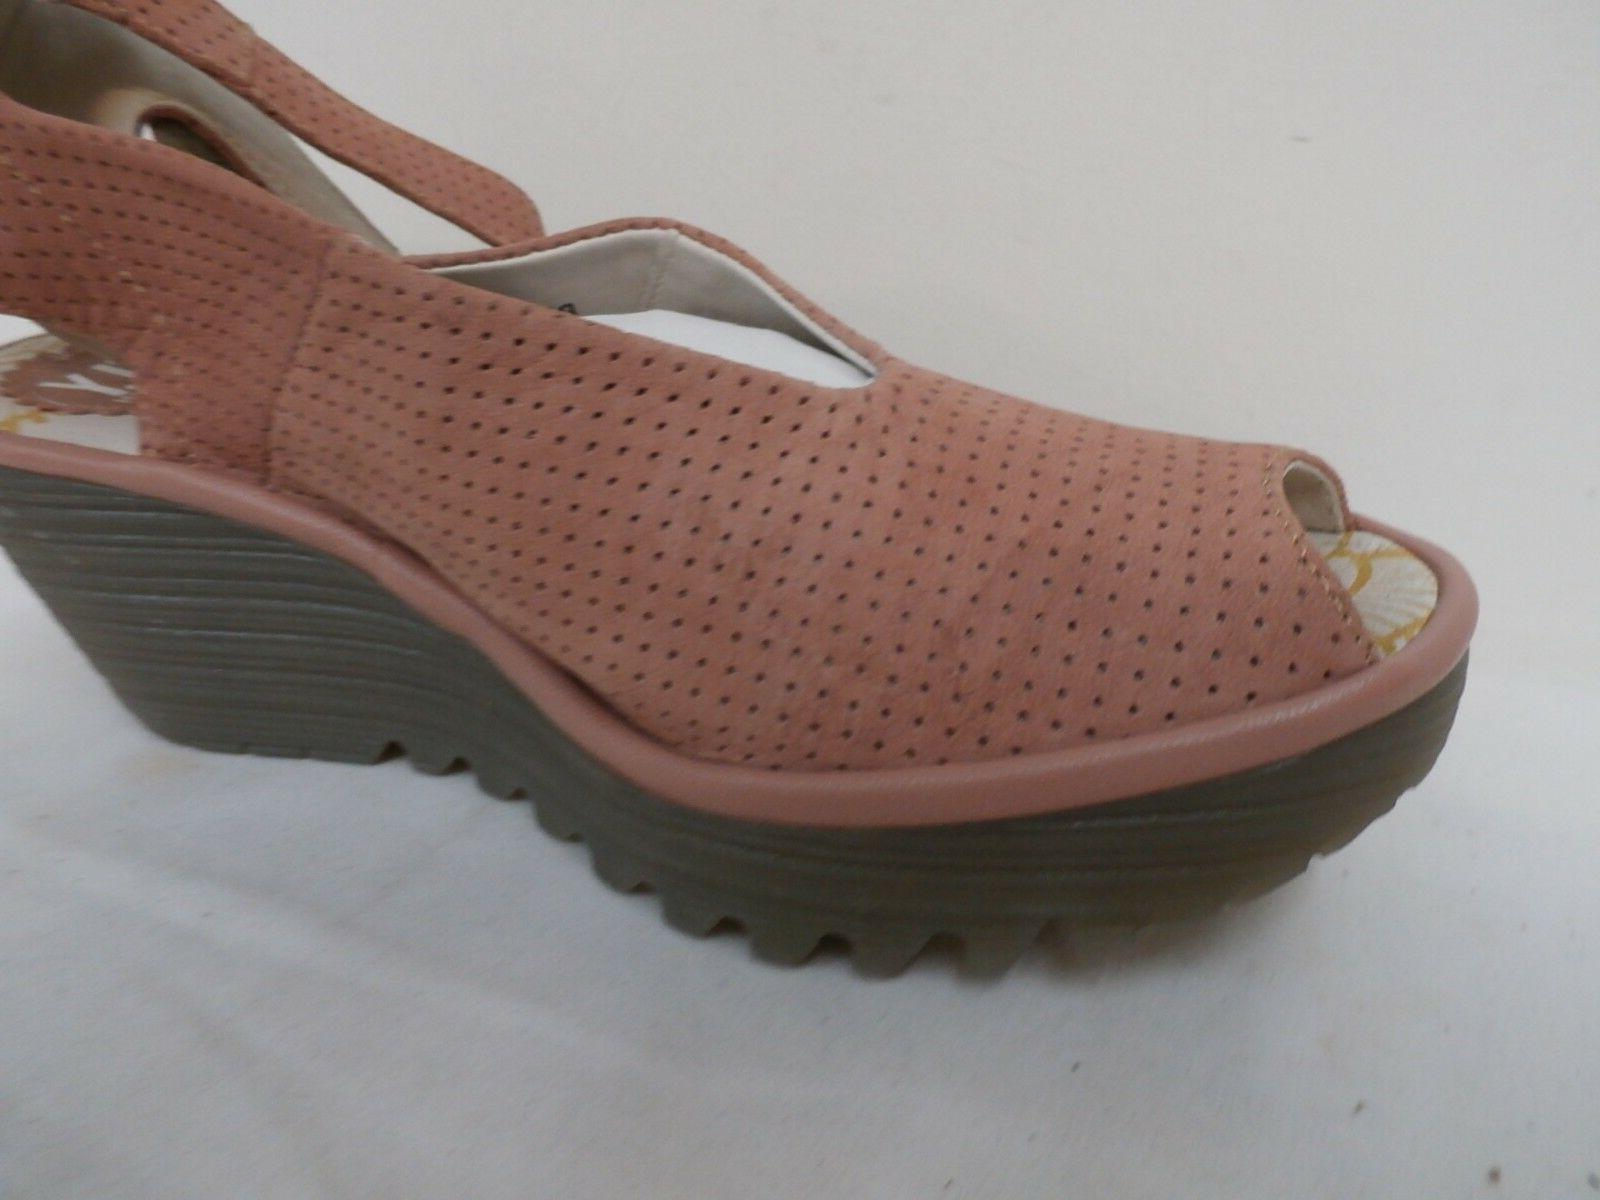 FLY Wedge Sandals - Yala Perf